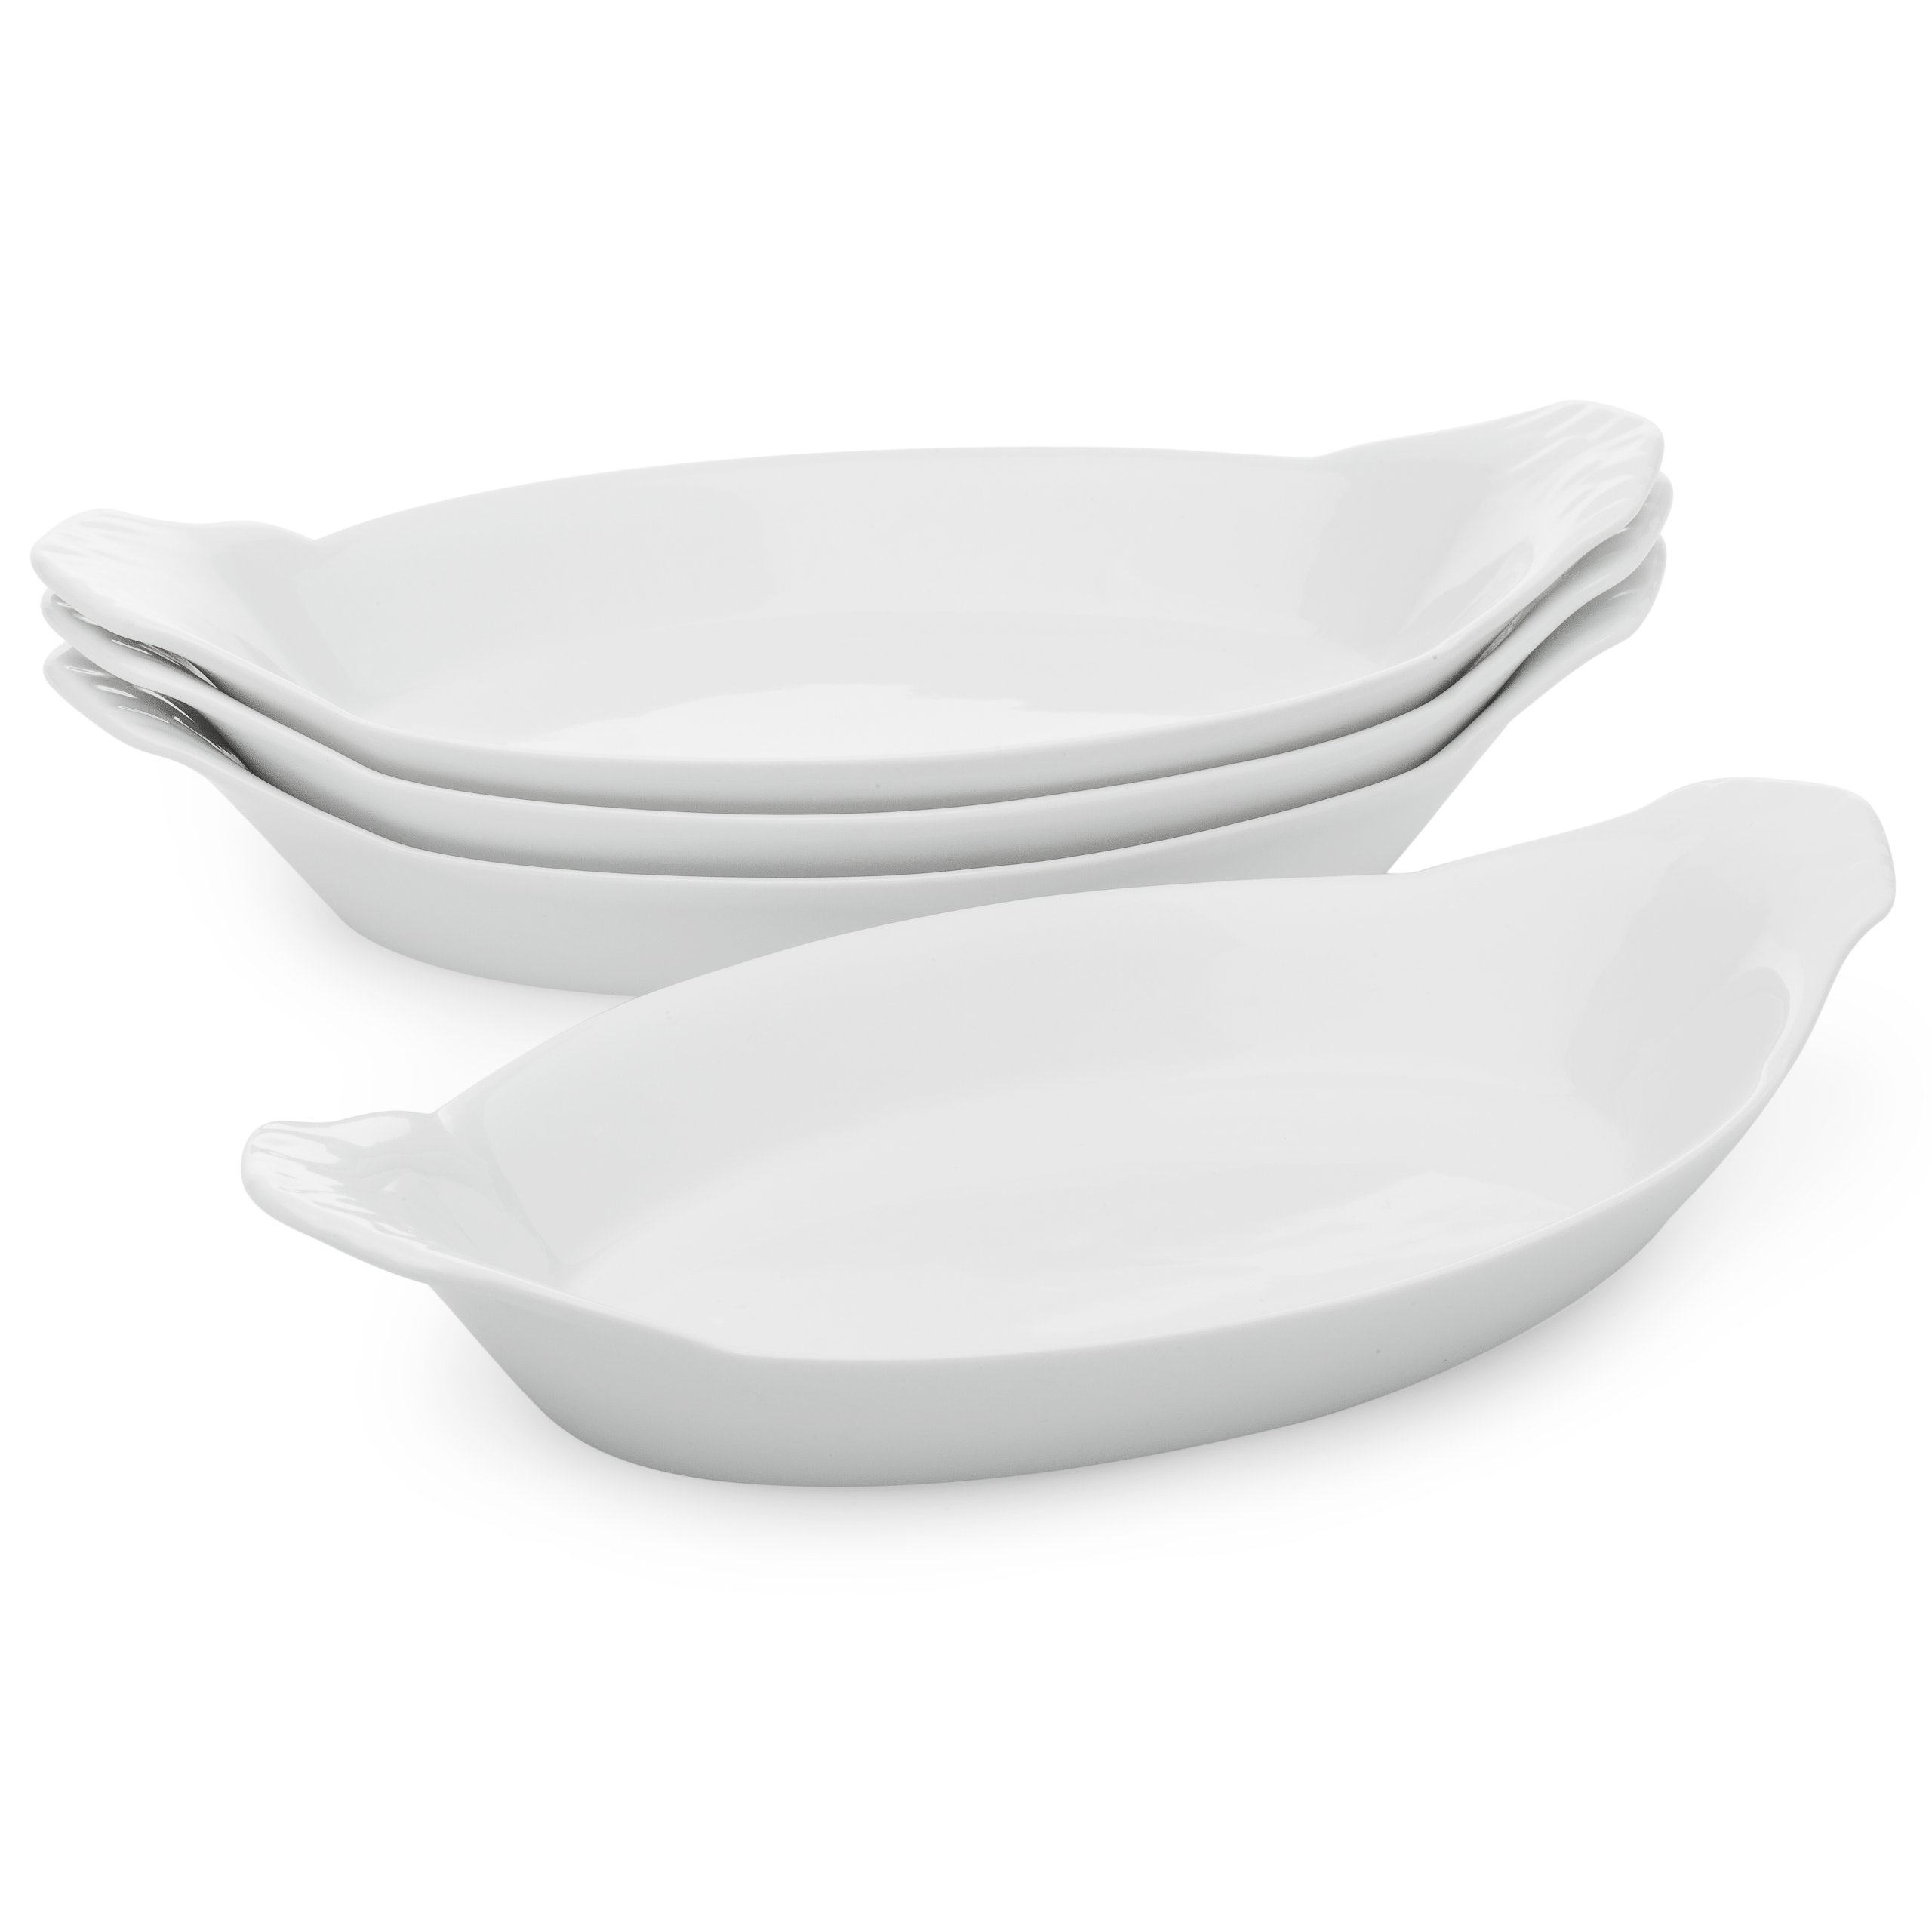 HIC Oval Au Gratin Baking Dishes, Fine White Porcelain, 10'', Set of 4 by HIC Harold Import Co.